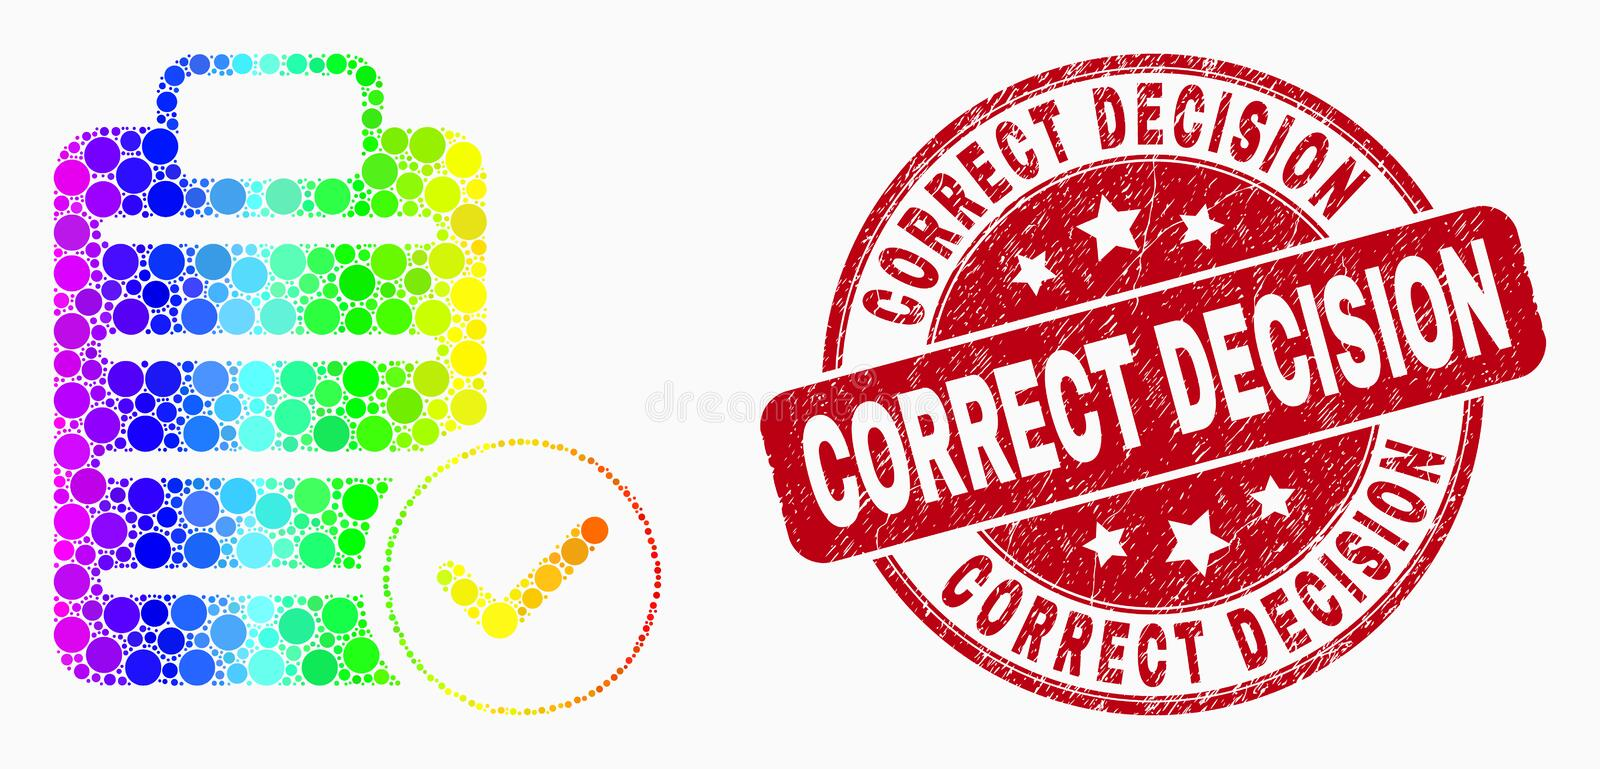 Vector Rainbow Colored Pixel Accept Pad Text Icon and Grunge Correct Decision Stamp. Pixel spectrum accept pad text mosaic icon and Correct Decision seal stamp vector illustration